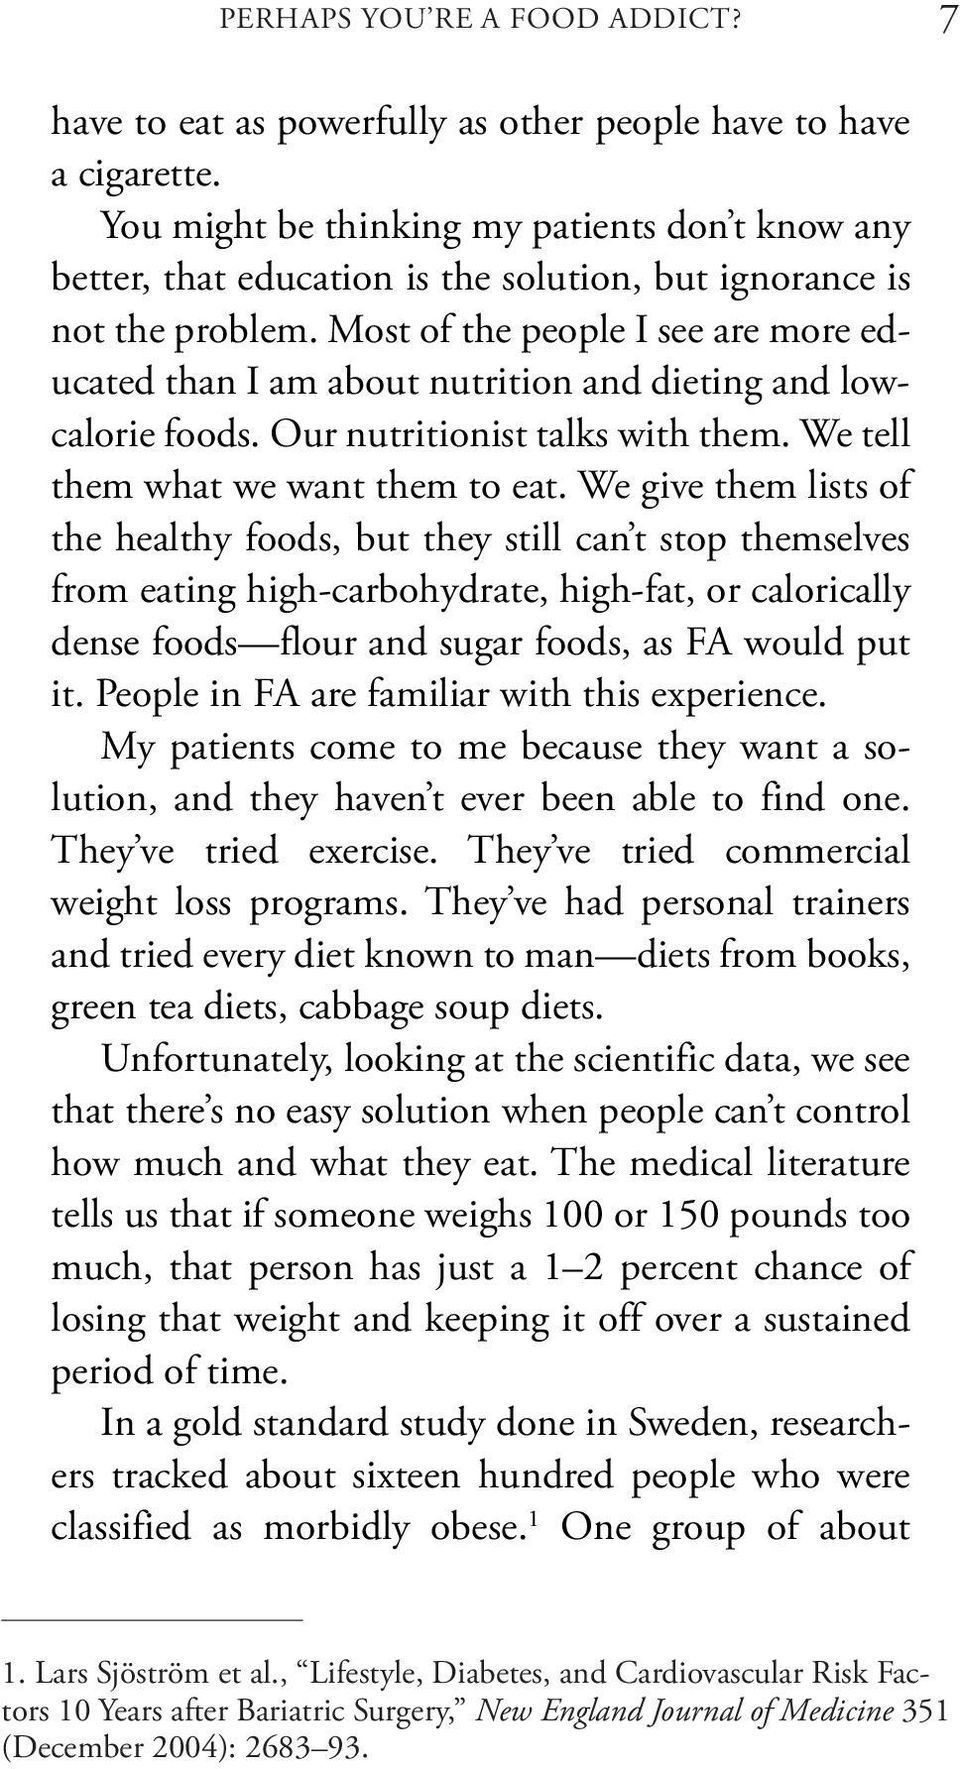 Most of the people I see are more educated than I am about nutrition and dieting and lowcalorie foods. Our nutritionist talks with them. We tell them what we want them to eat.